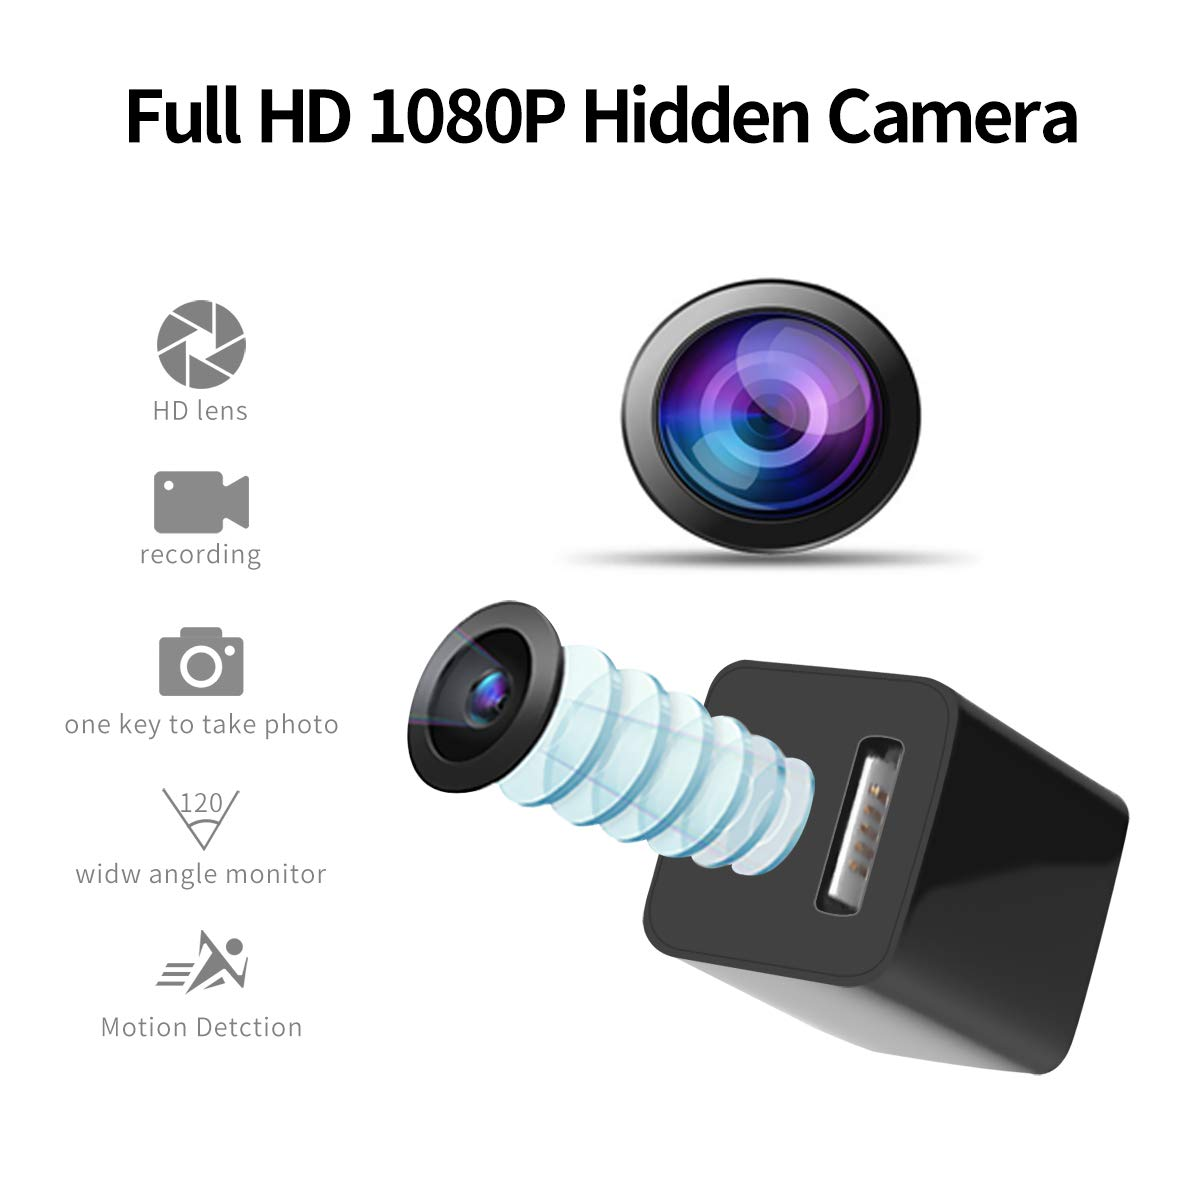 Spy Camera, Full HD 1080p Hidden Camera Charger, Loop Recording USB Hidden Spy Camera, No WiFi Needed Mini USB Charger Spy Camera, Hidden Spy Cam with Motion Detection, Can be Used as Phone Black